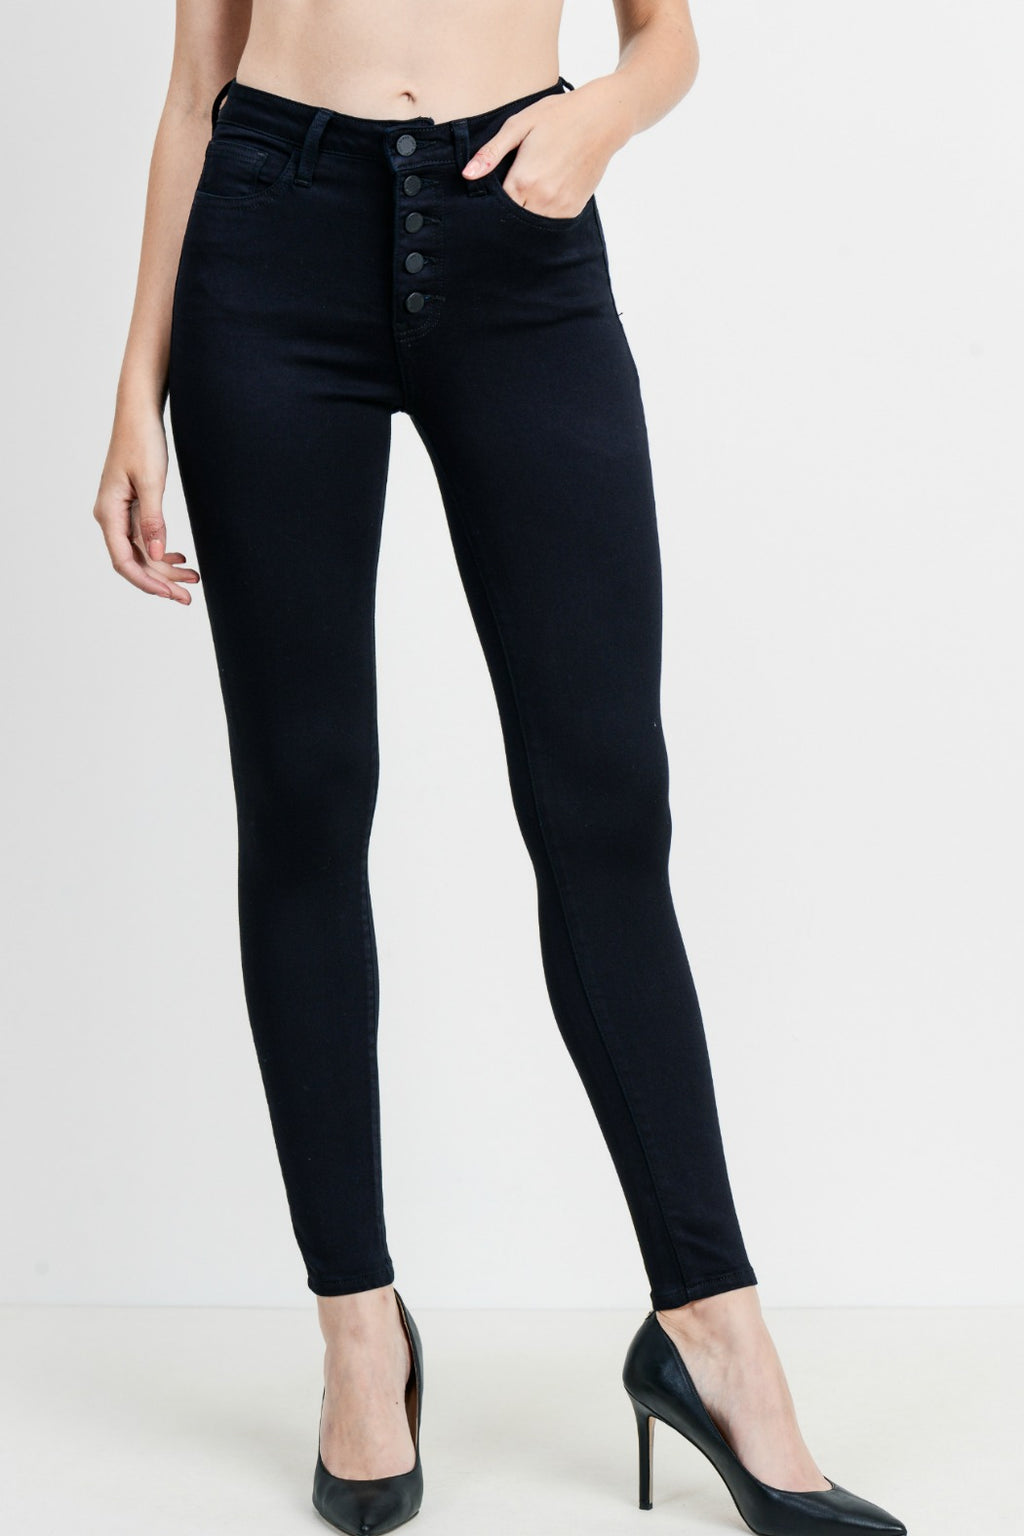 Just Black High Rise Button Down Skinny - $10 OFF WITH CODE: DENIMSALE